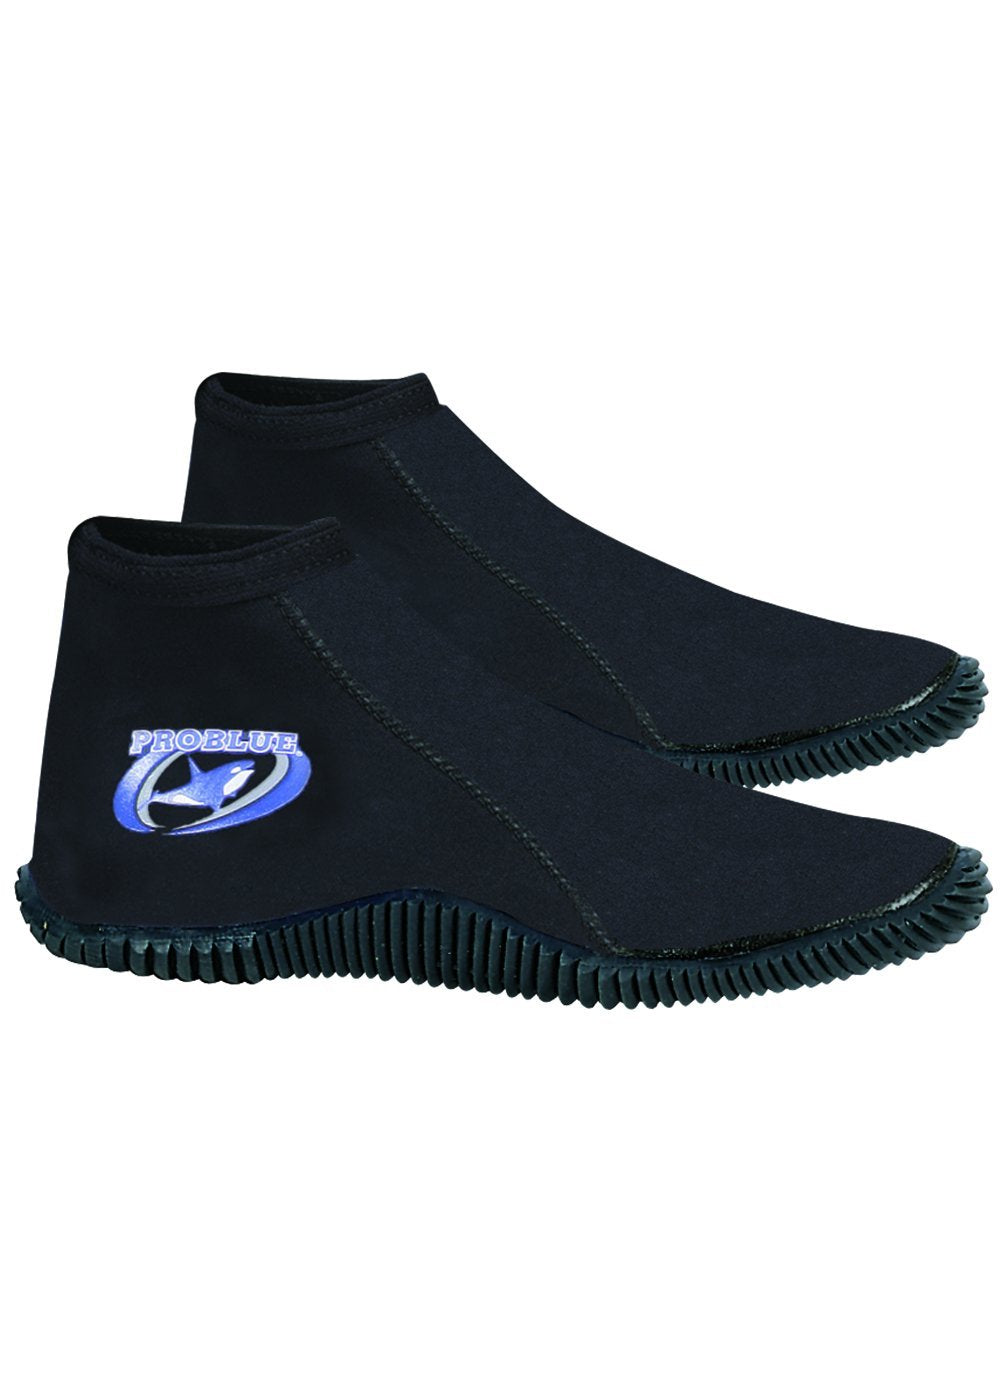 Problue Low Cut Dive Boot 3mm